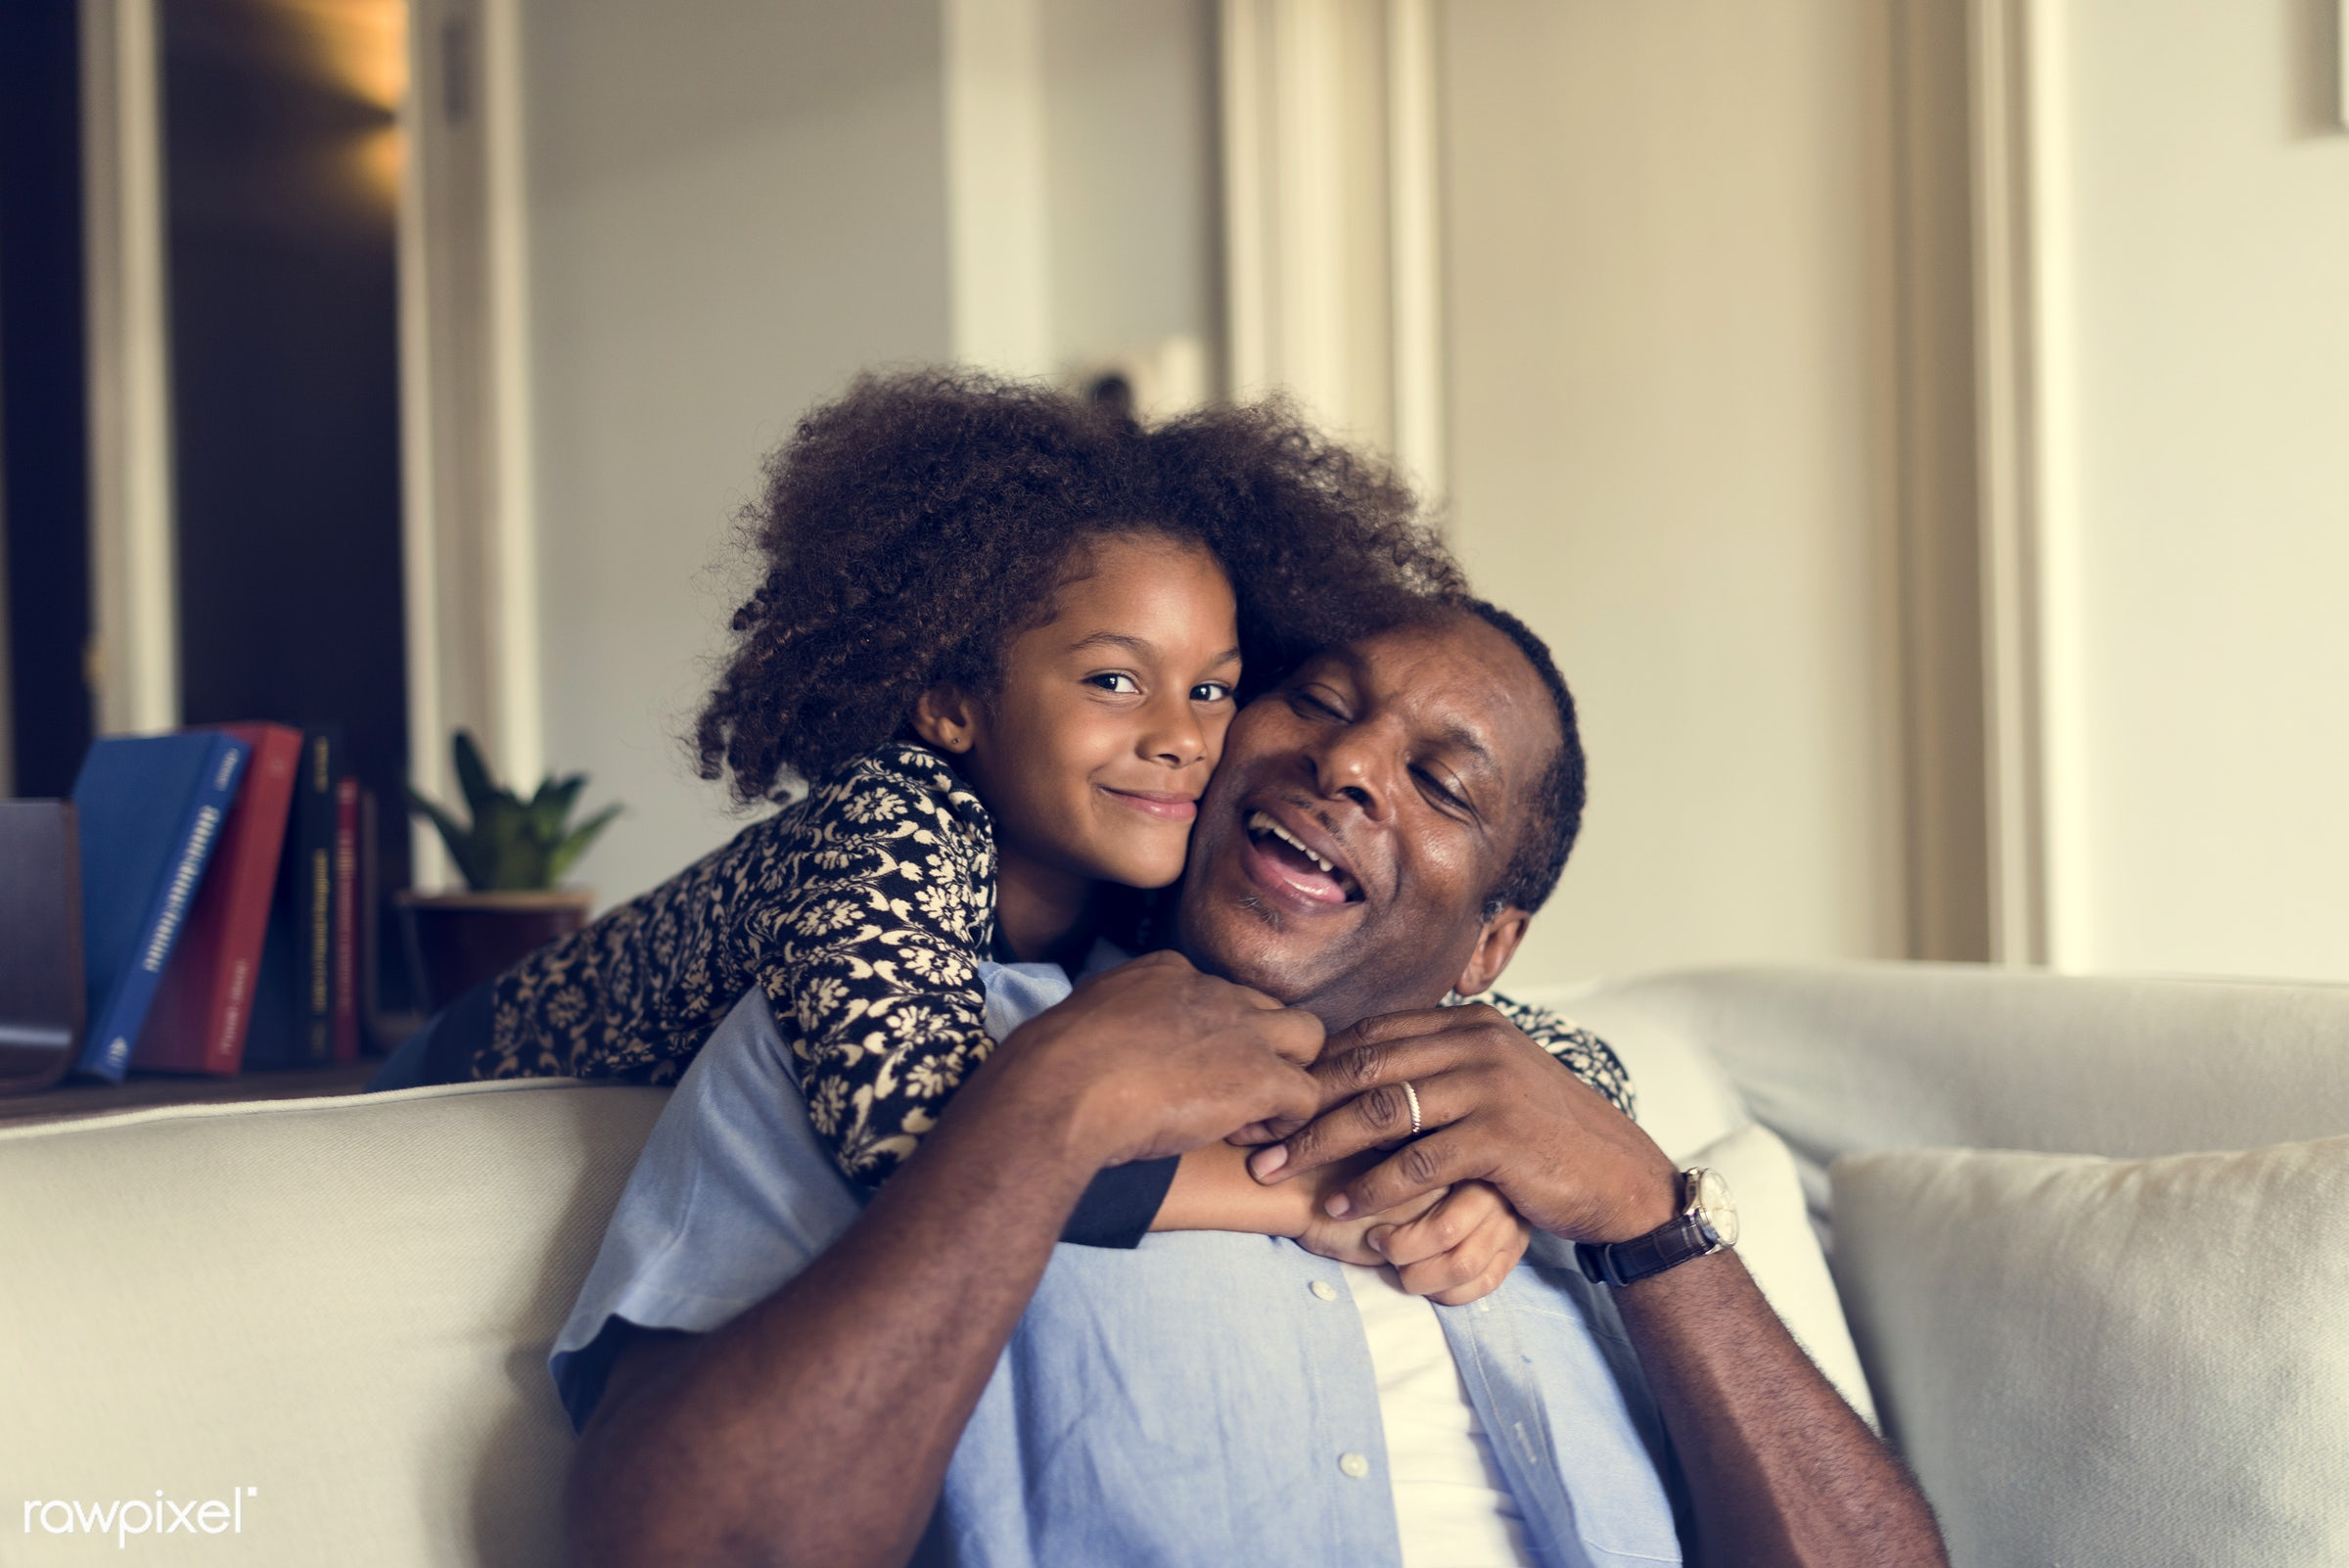 calm, home, african, freedom, residential, relax, daughter, house, people, father, sister, kiss, life, serenity, family,...